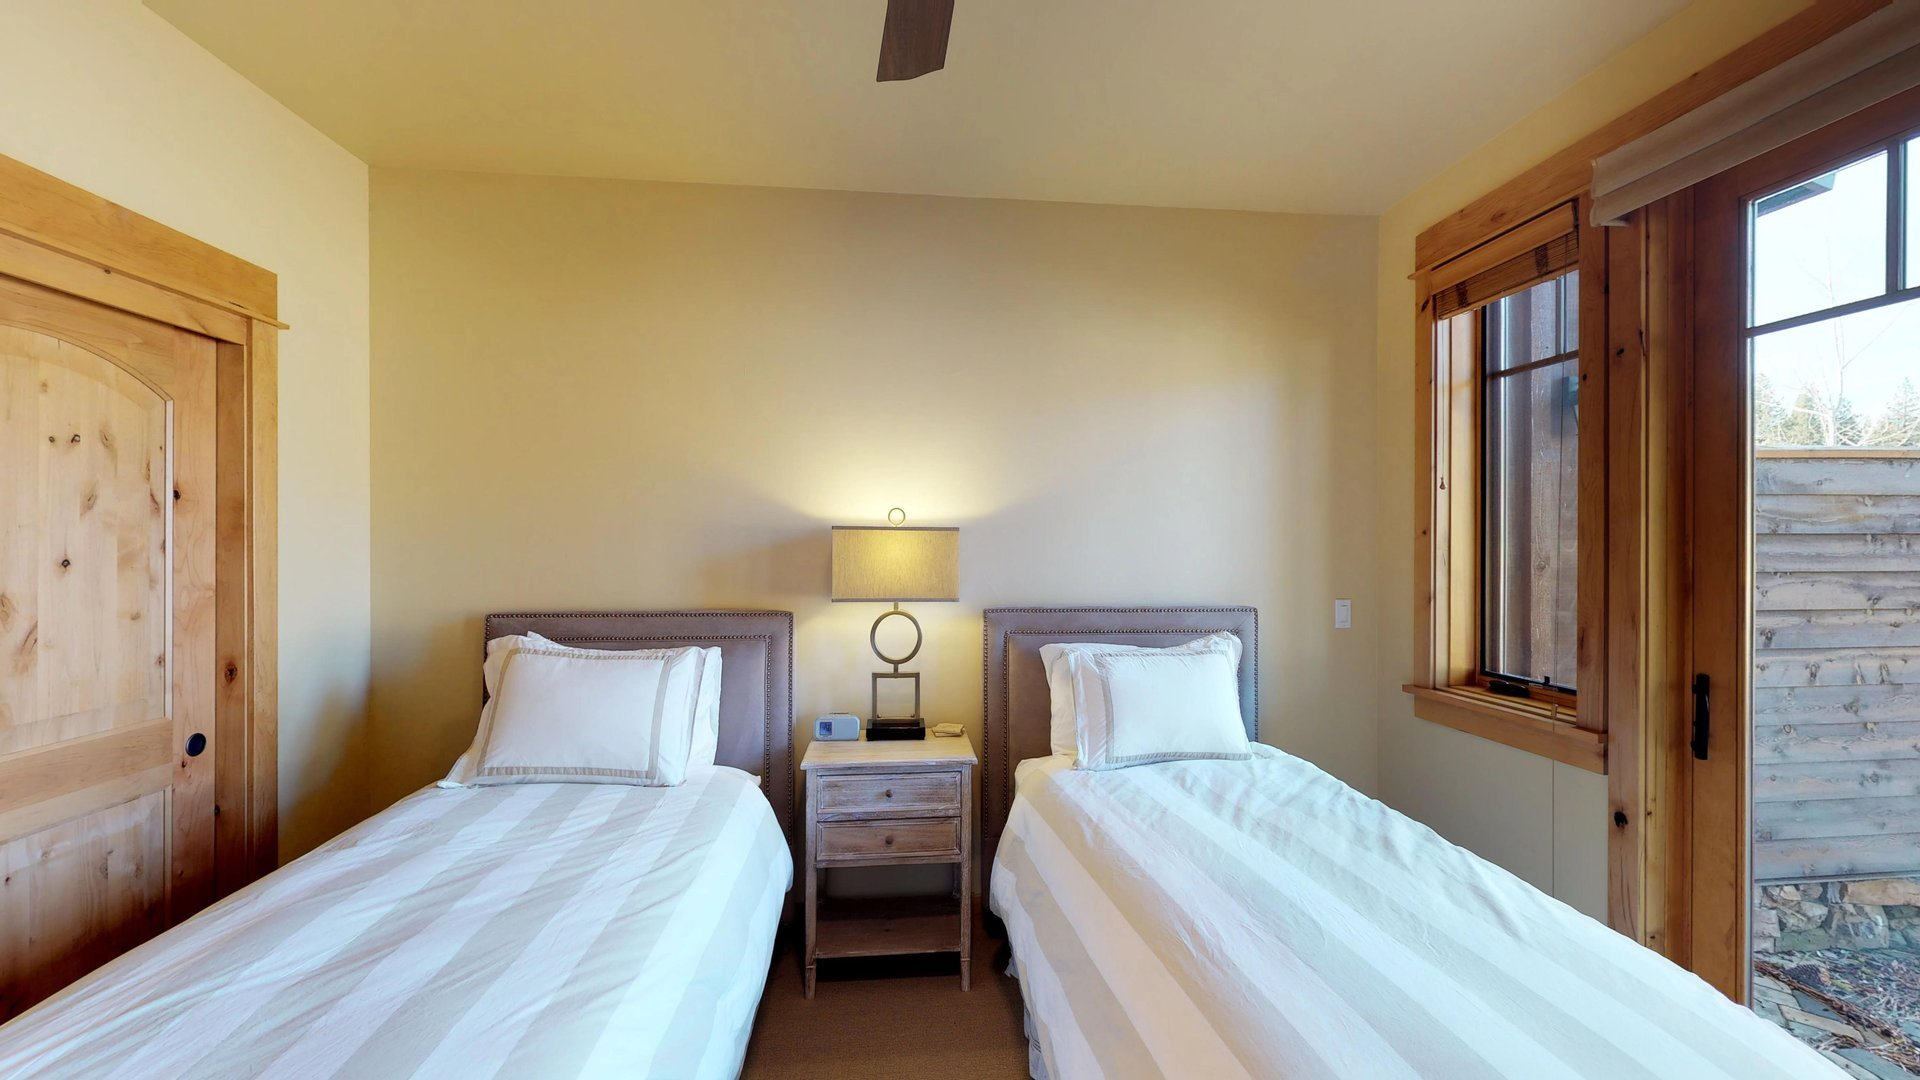 Enjoy Two Twin-Sized Beds and Direct Access Outdoors.